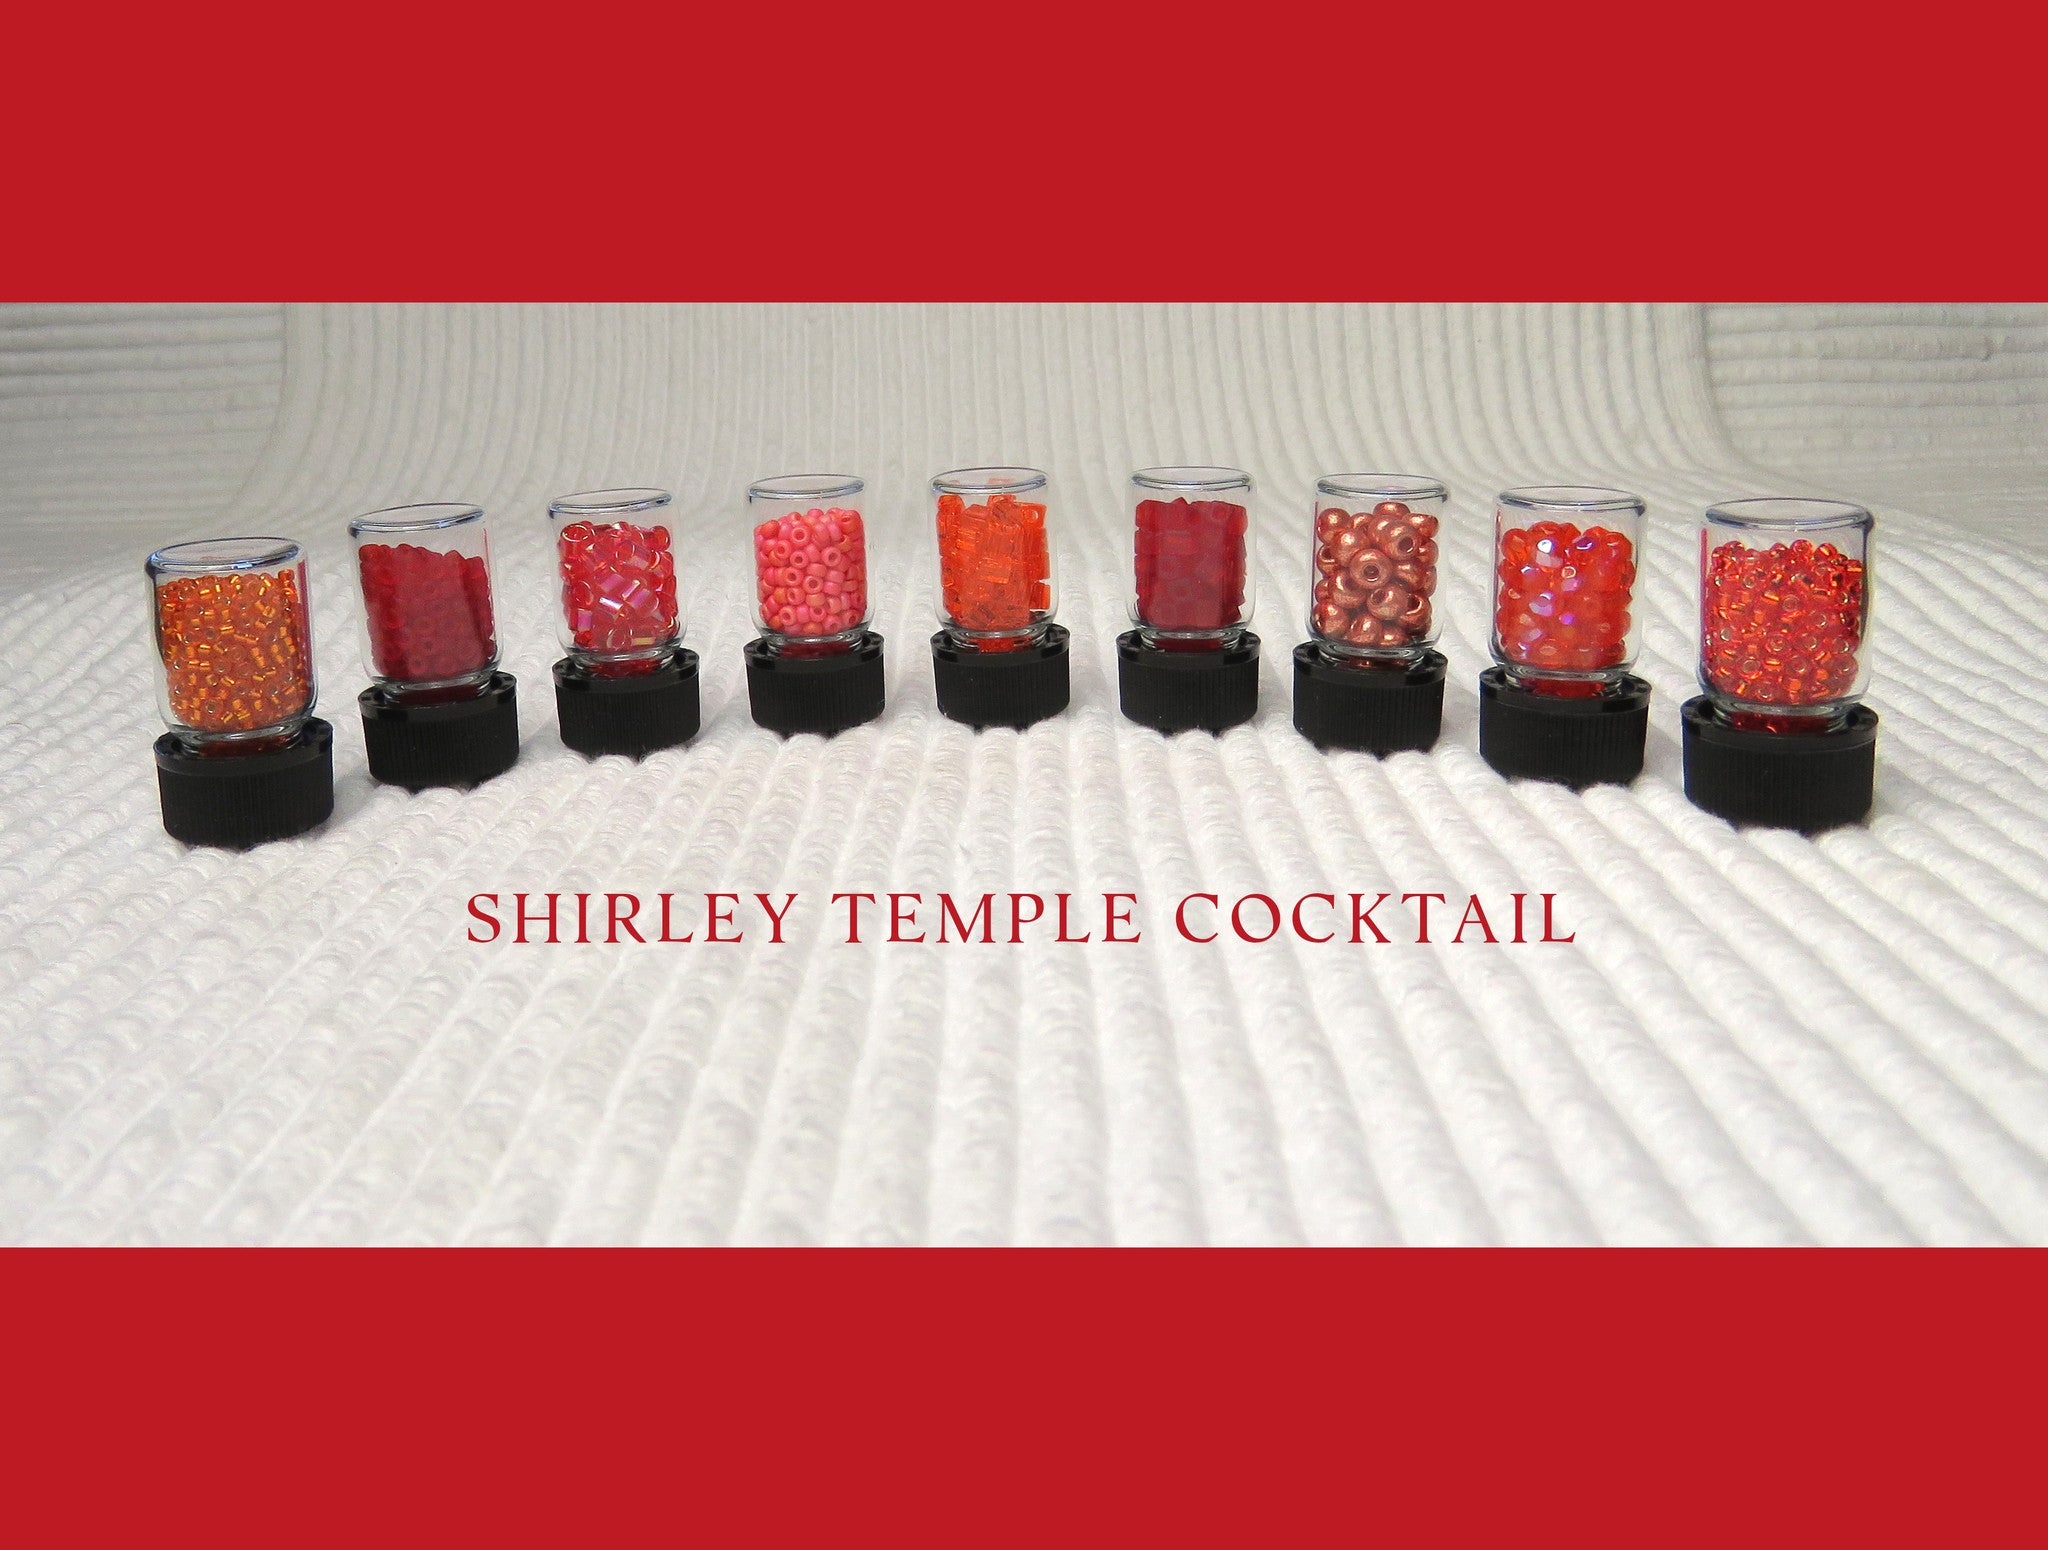 Shirley Temple Cocktail Bead Collection and Book